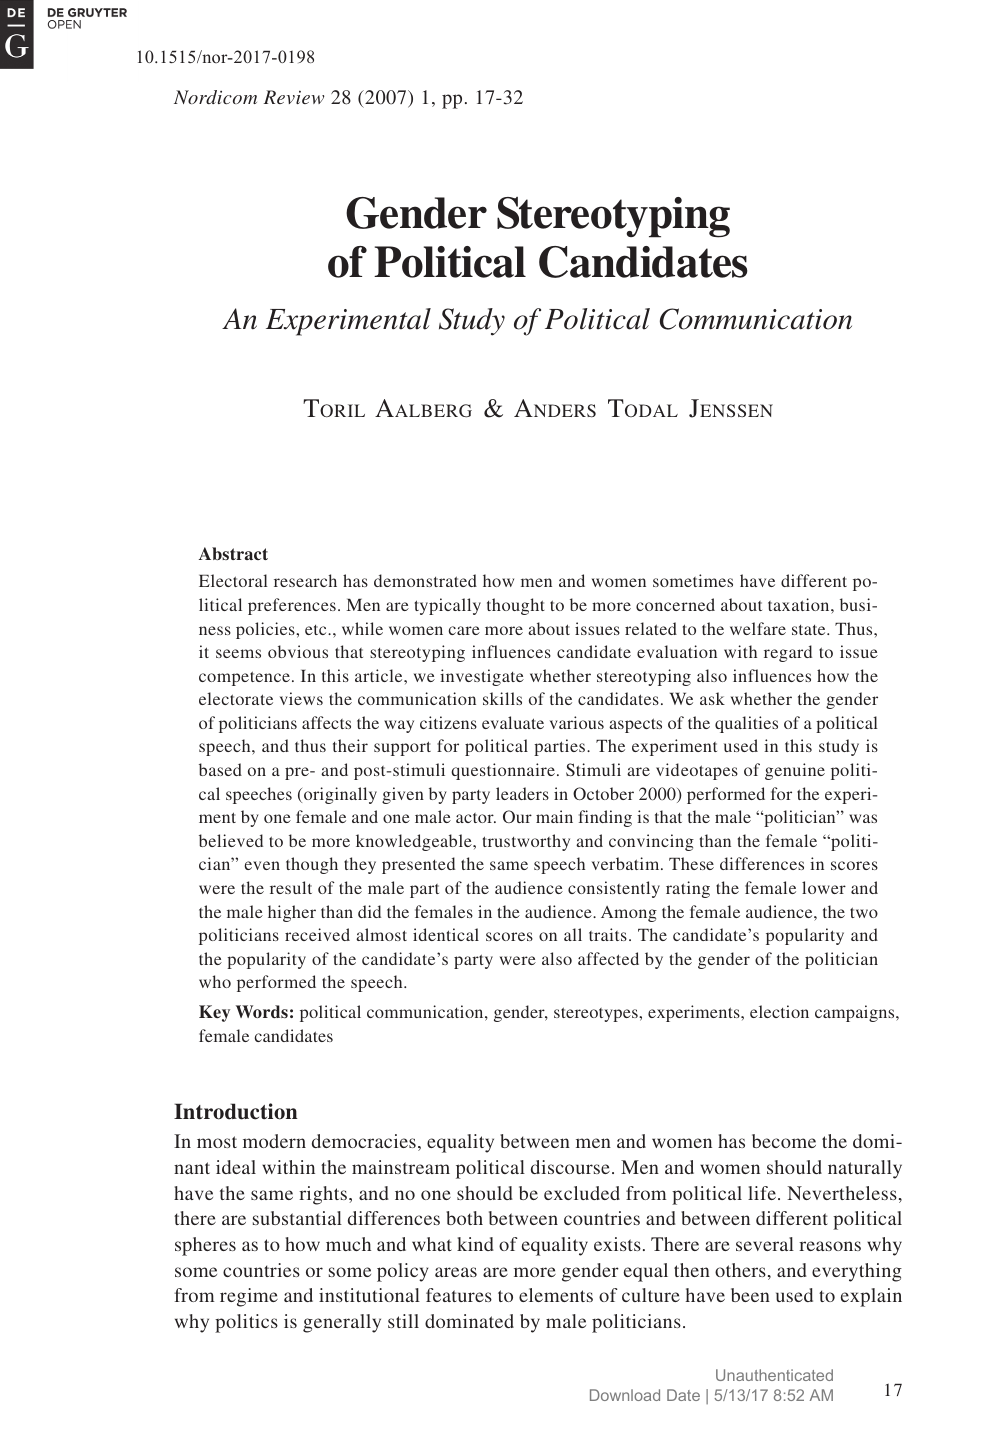 Political science research paper